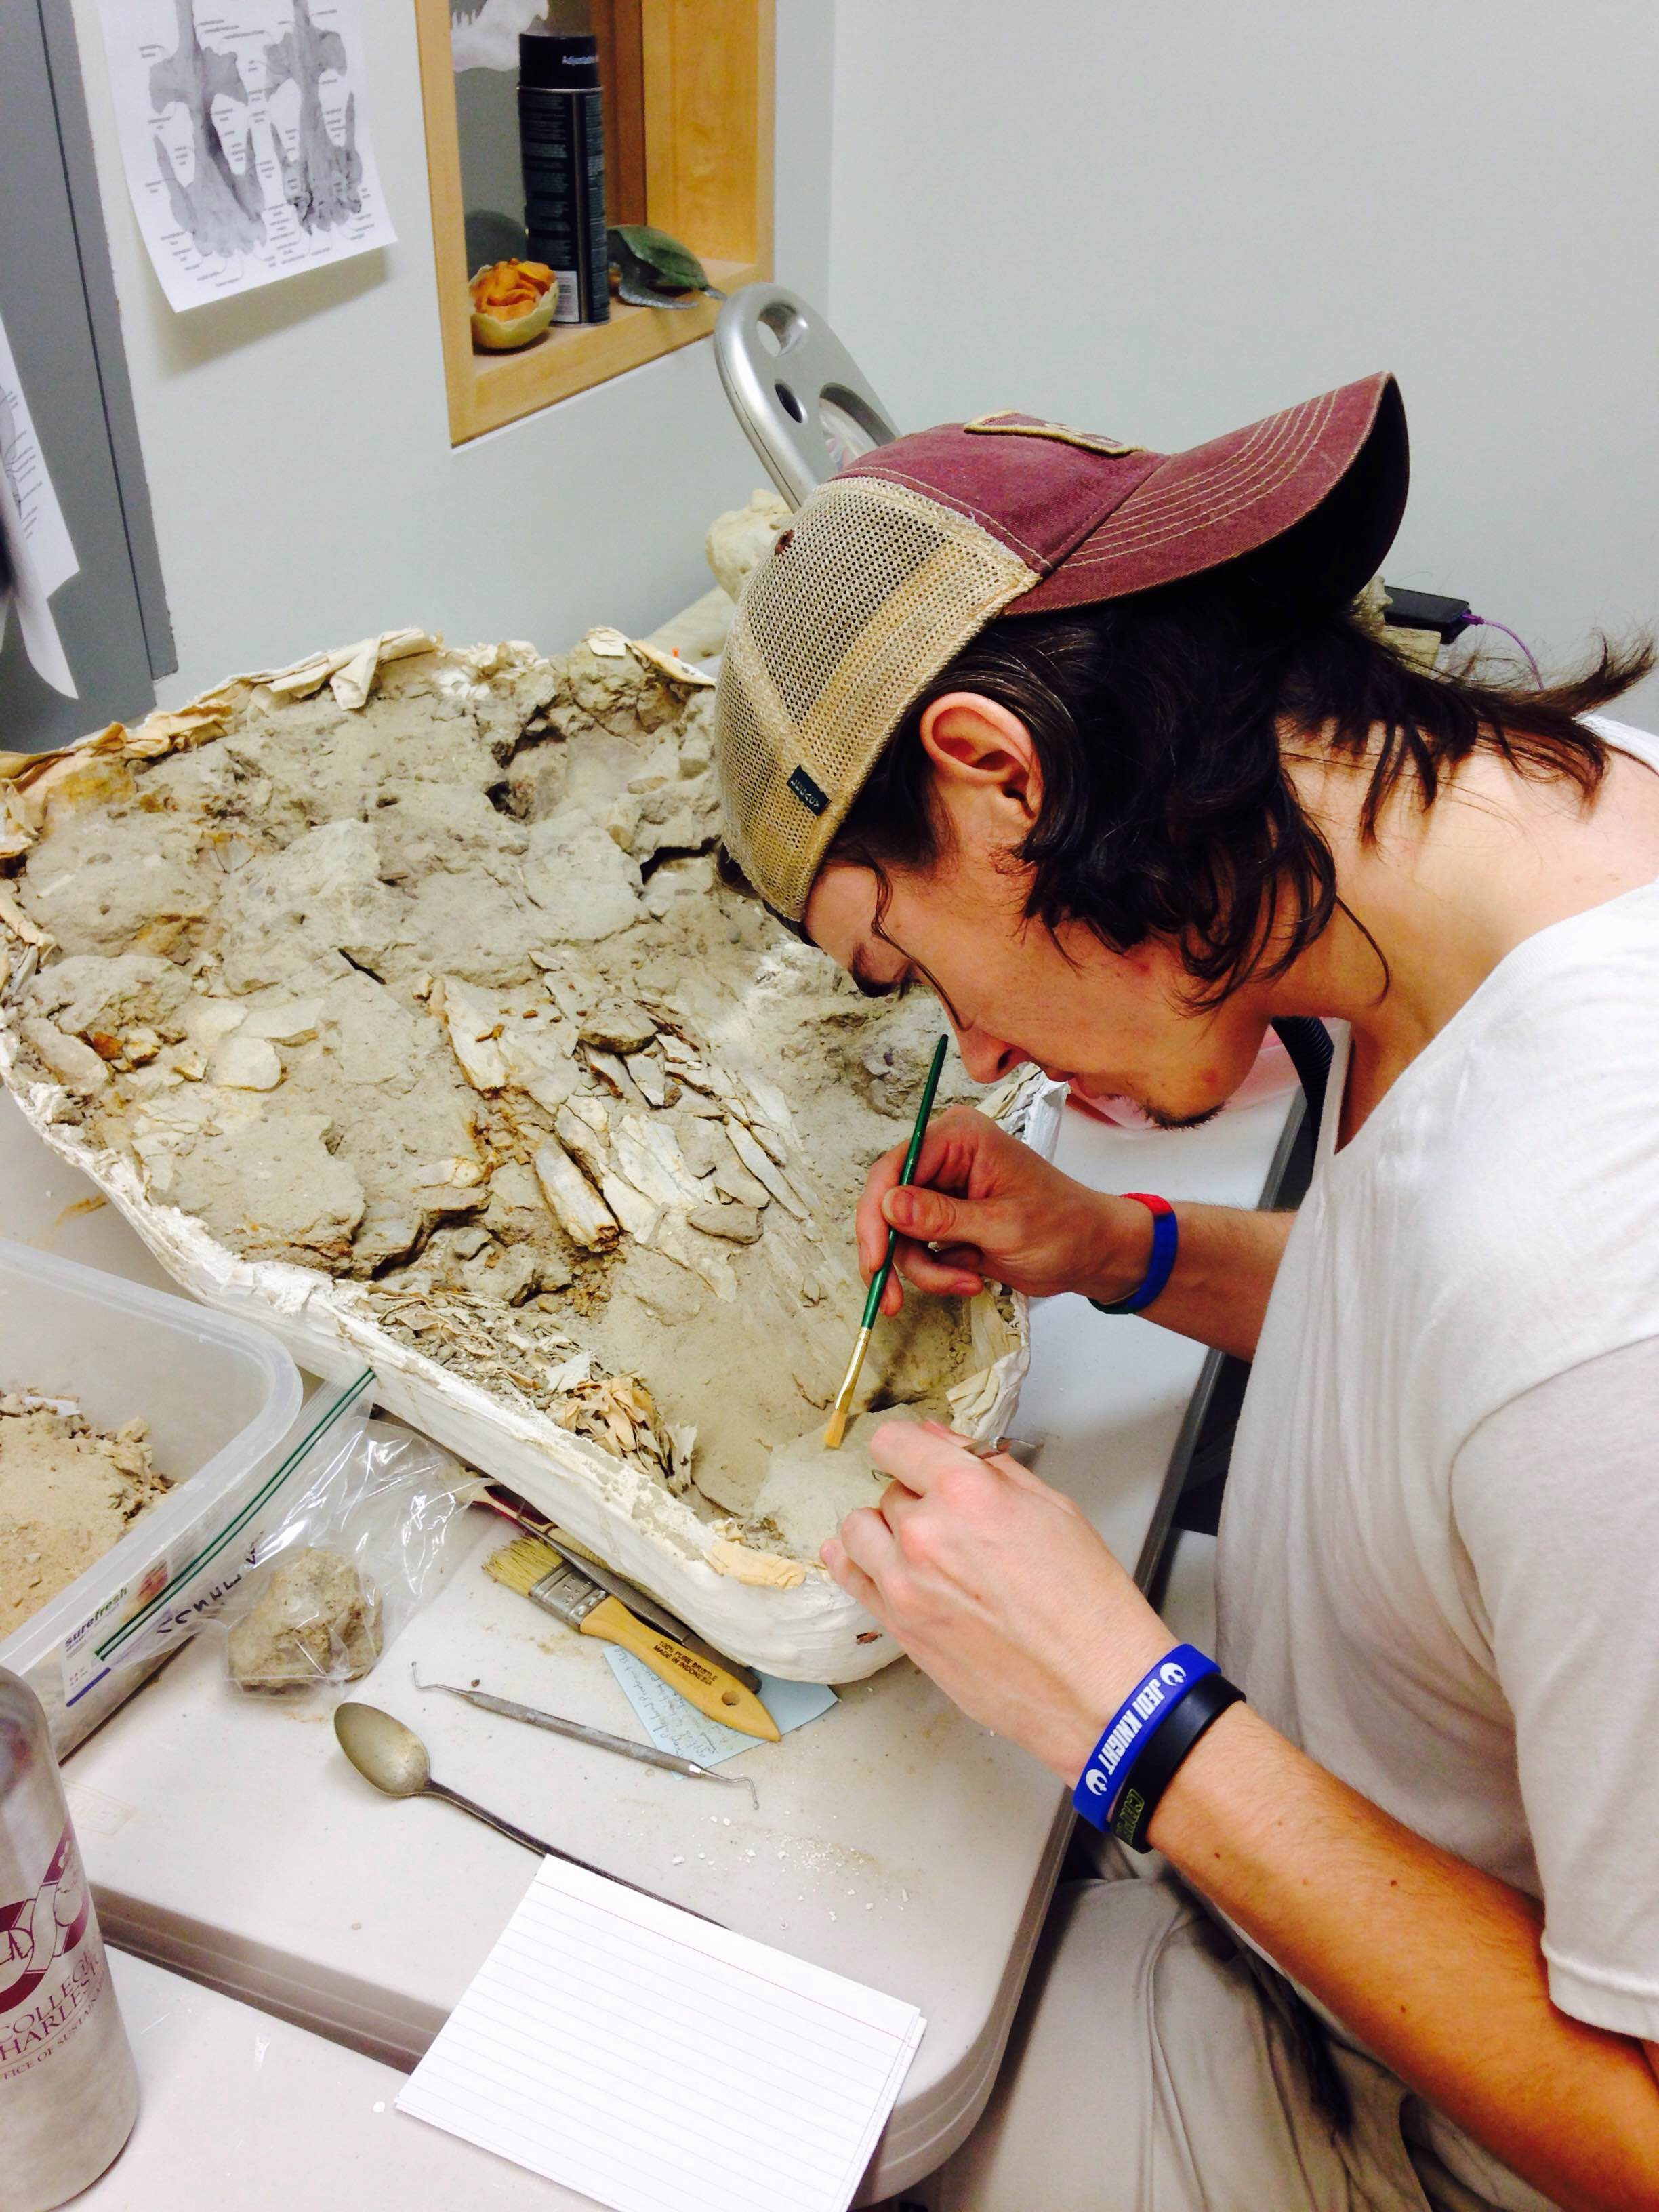 Brad working on his mysticete braincase. Photo by R. Boessenecker.